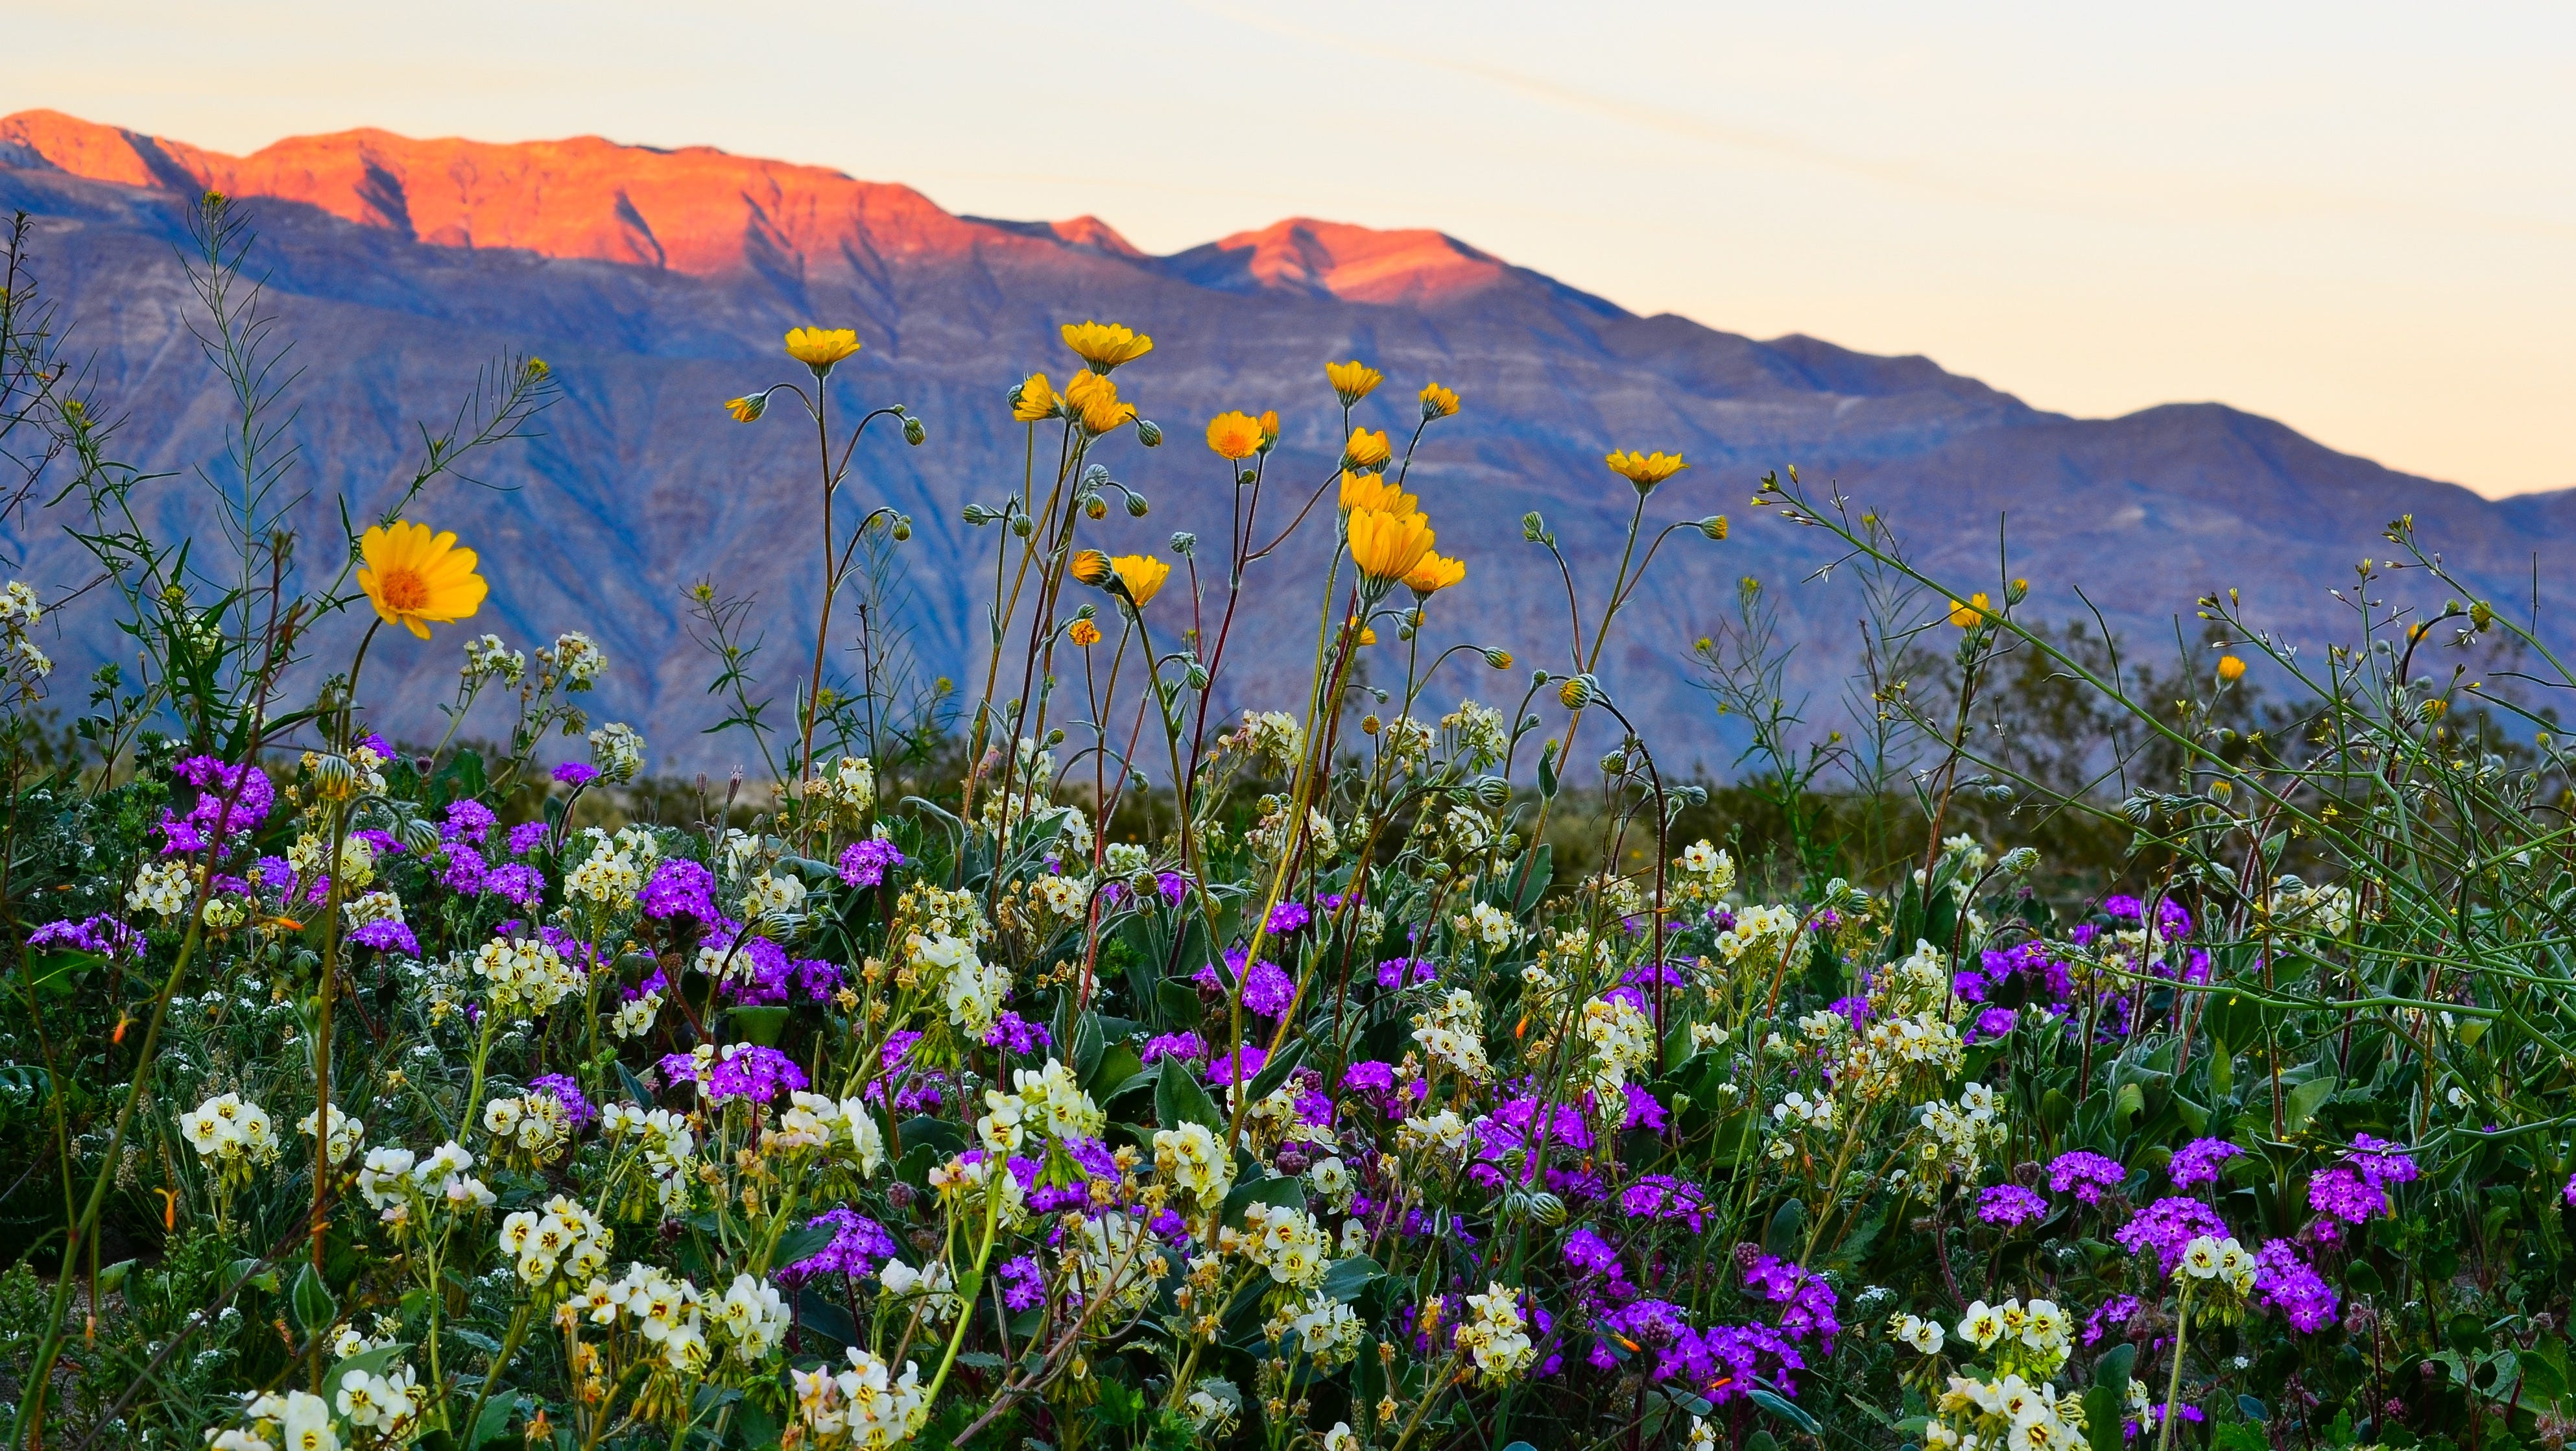 When will this year's wildflower super bloom happen in the California desert?